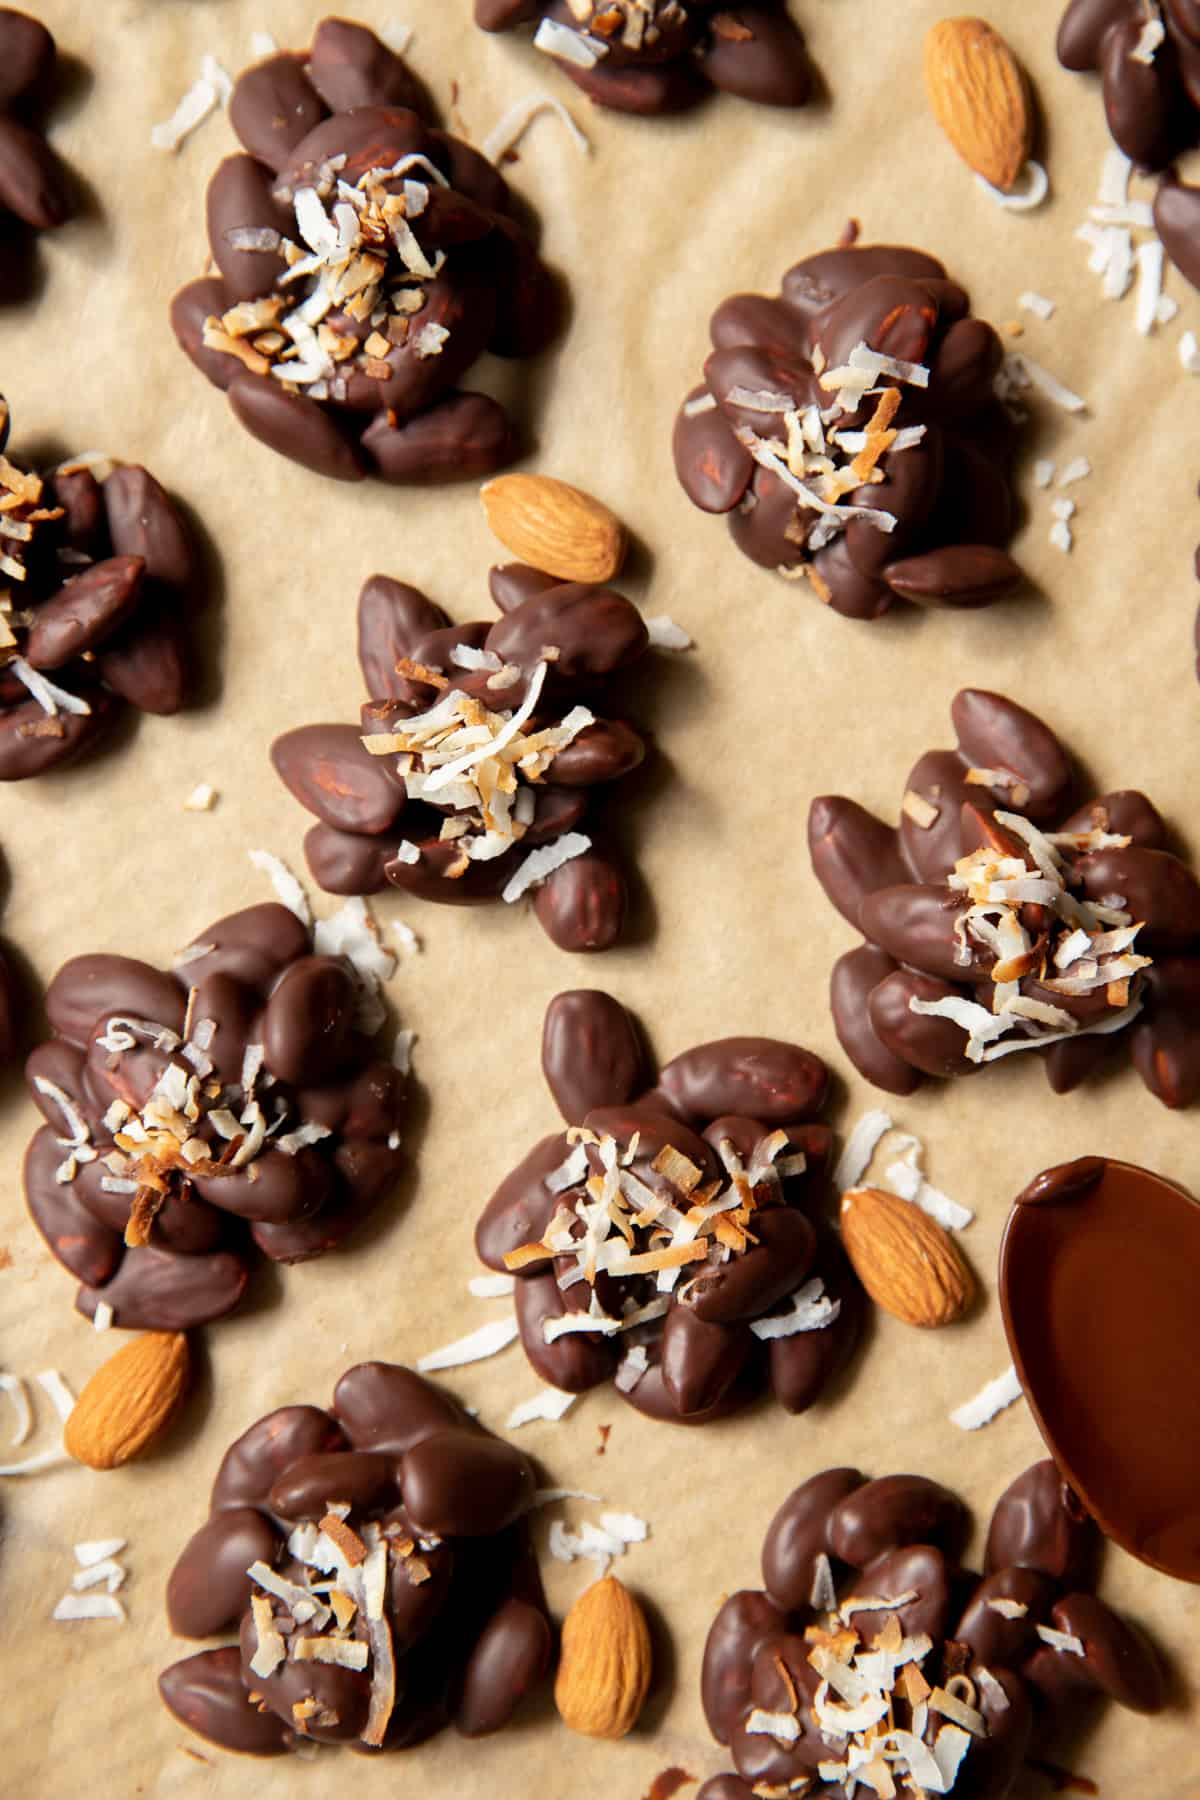 dark chocolate almond clusters on a piece of parchment paper with shredded coconut on top